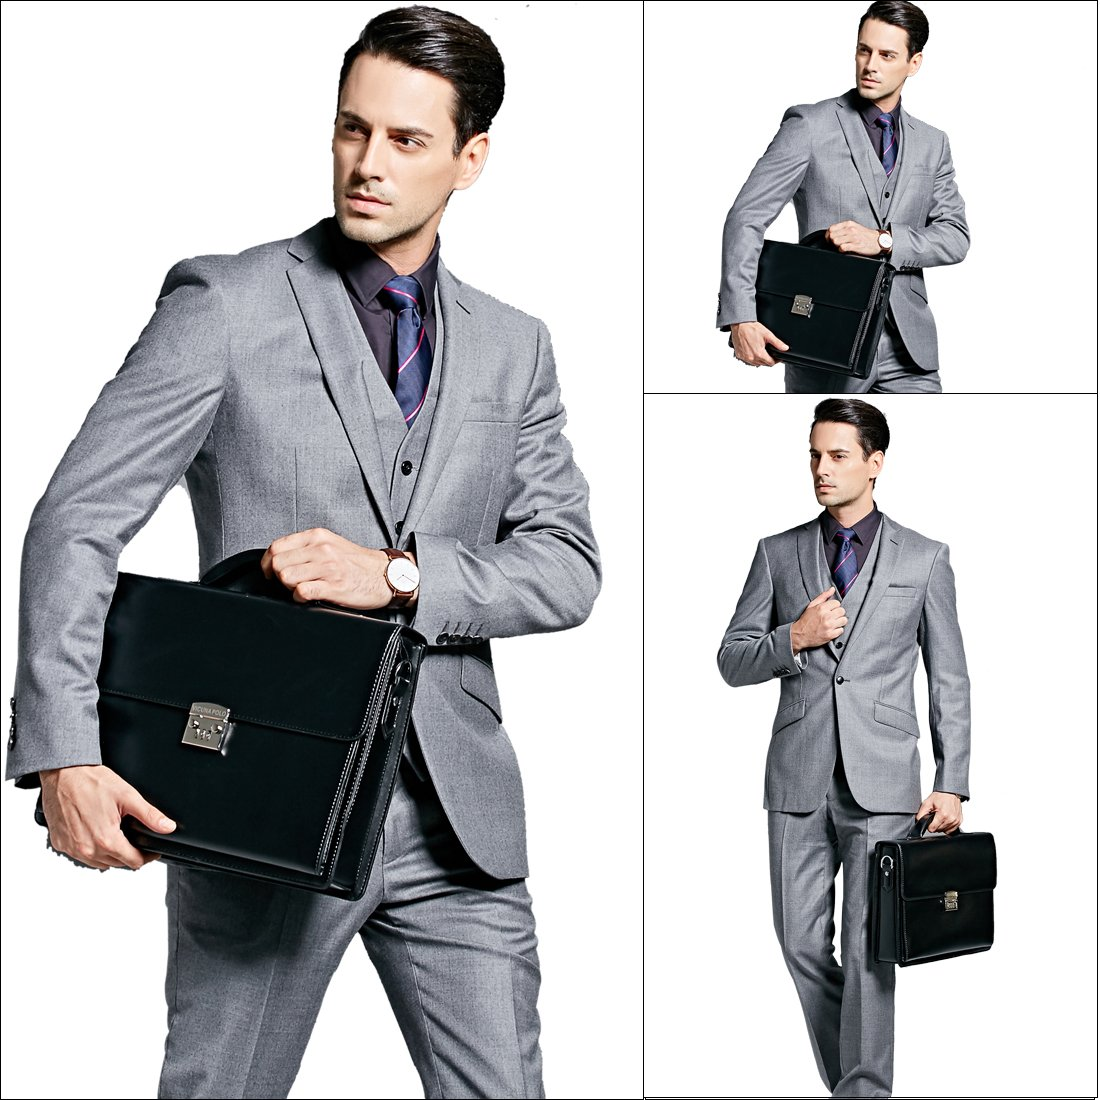 VICUNA POLO Briefcase For Men Handbag Business Man Bag Laptop Bag With Code-Lock (black) by VICUNA POLO (Image #7)